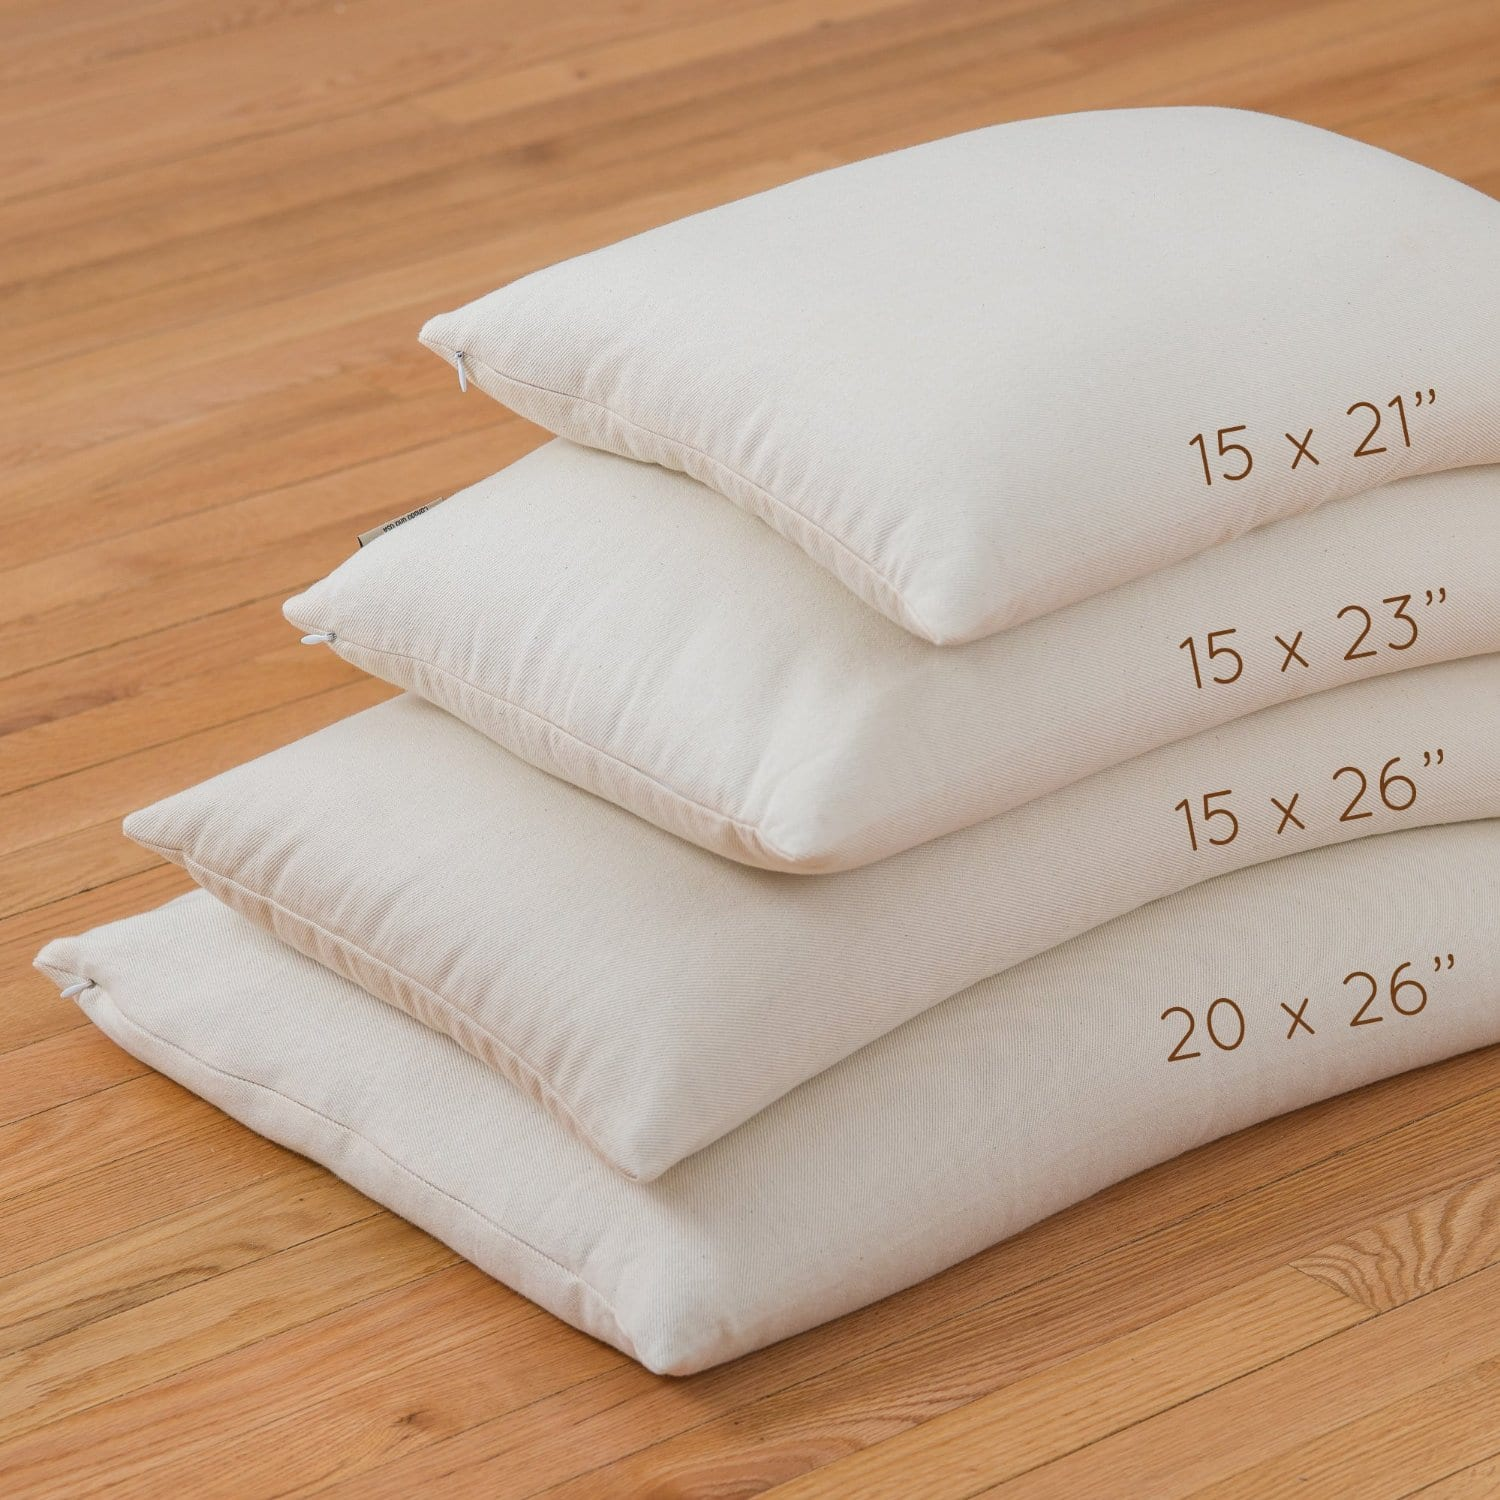 ComfyComfy Organic Pillow